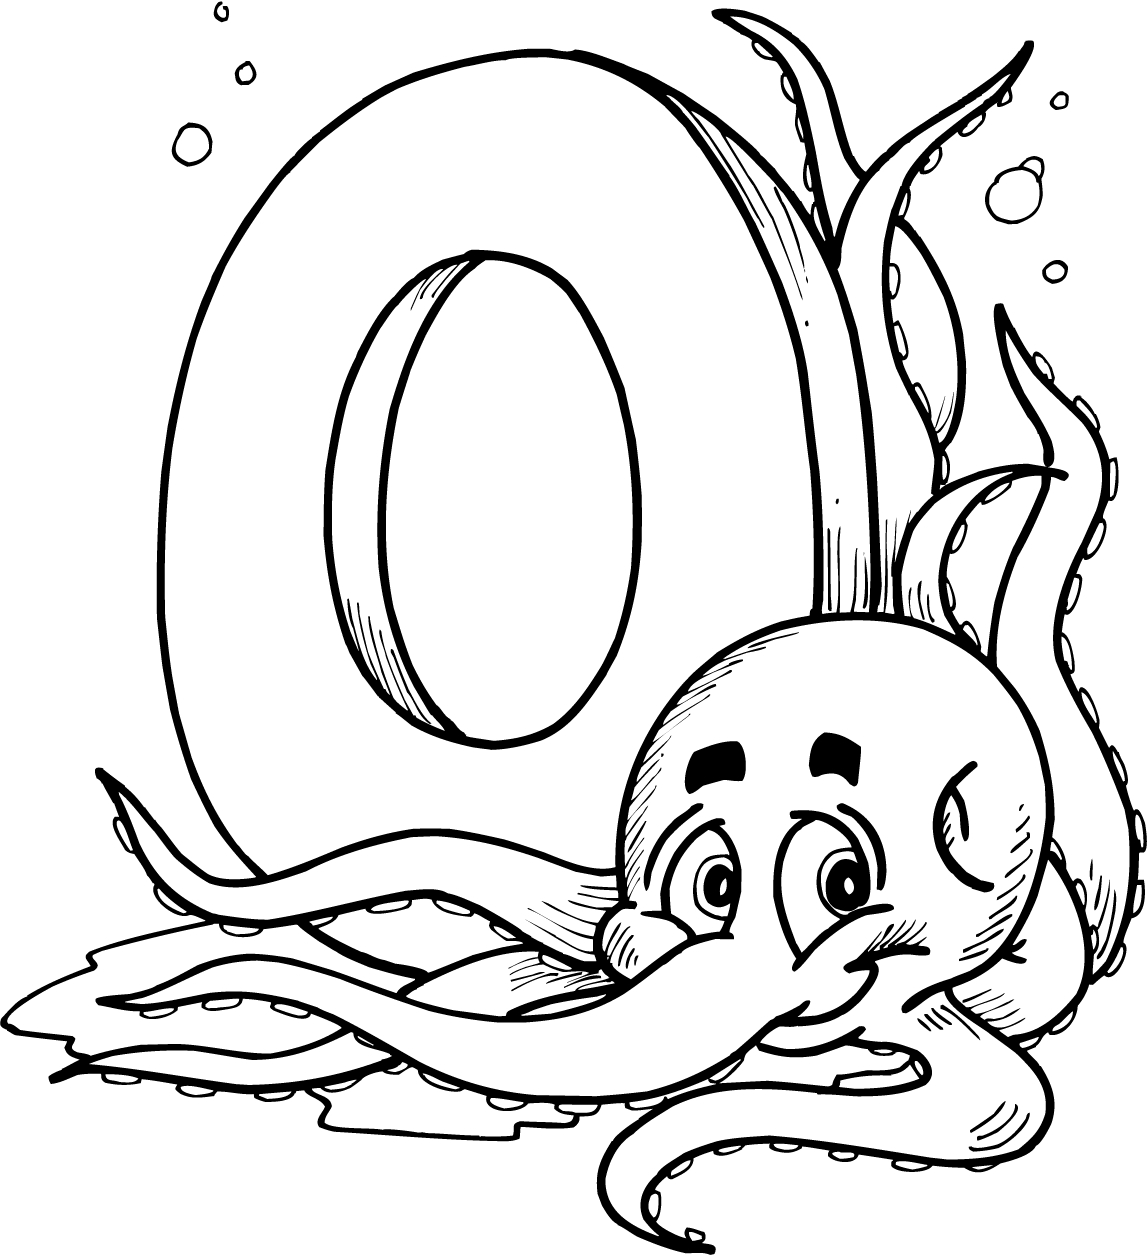 1148x1256 Letter O Coloring Pages Printable For Kids